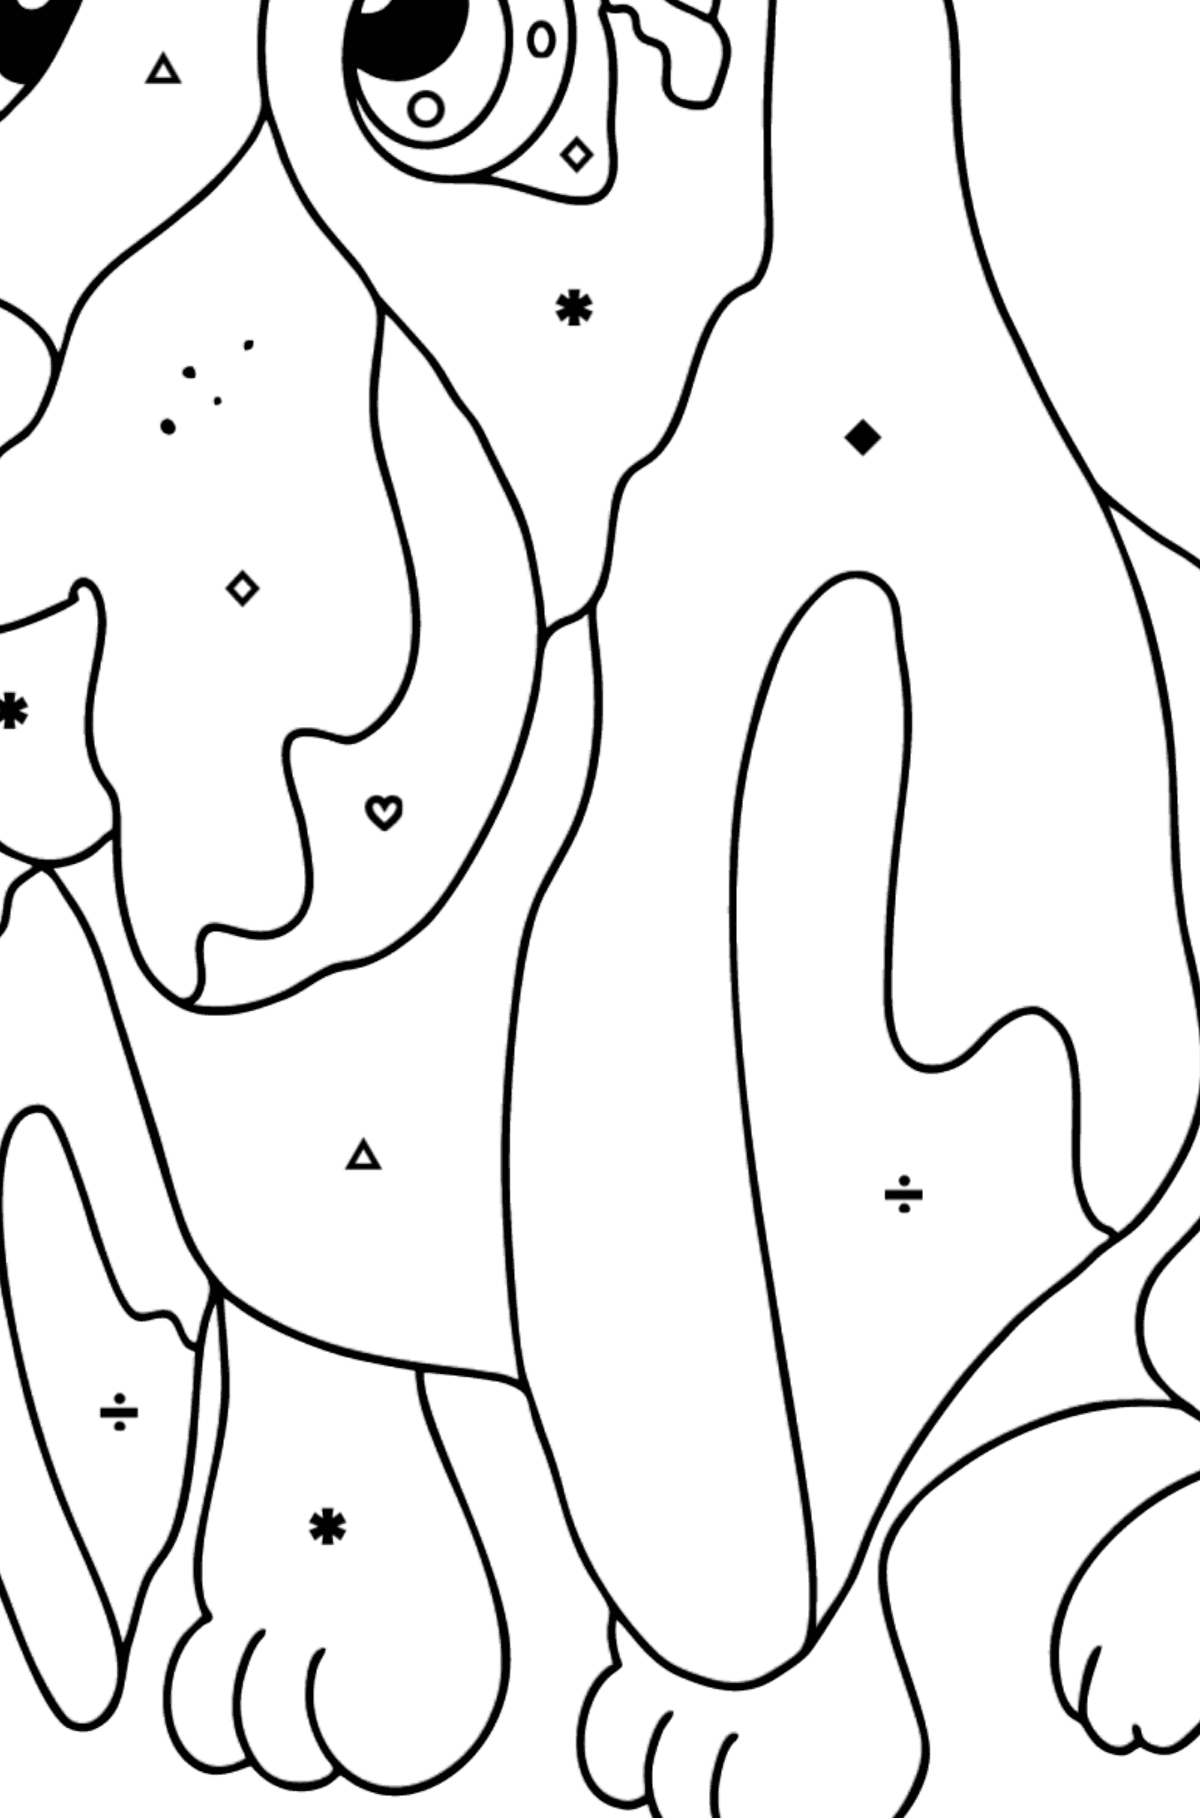 Coloring Page - A Dog with a Bone - Coloring by Symbols and Geometric Shapes for Kids